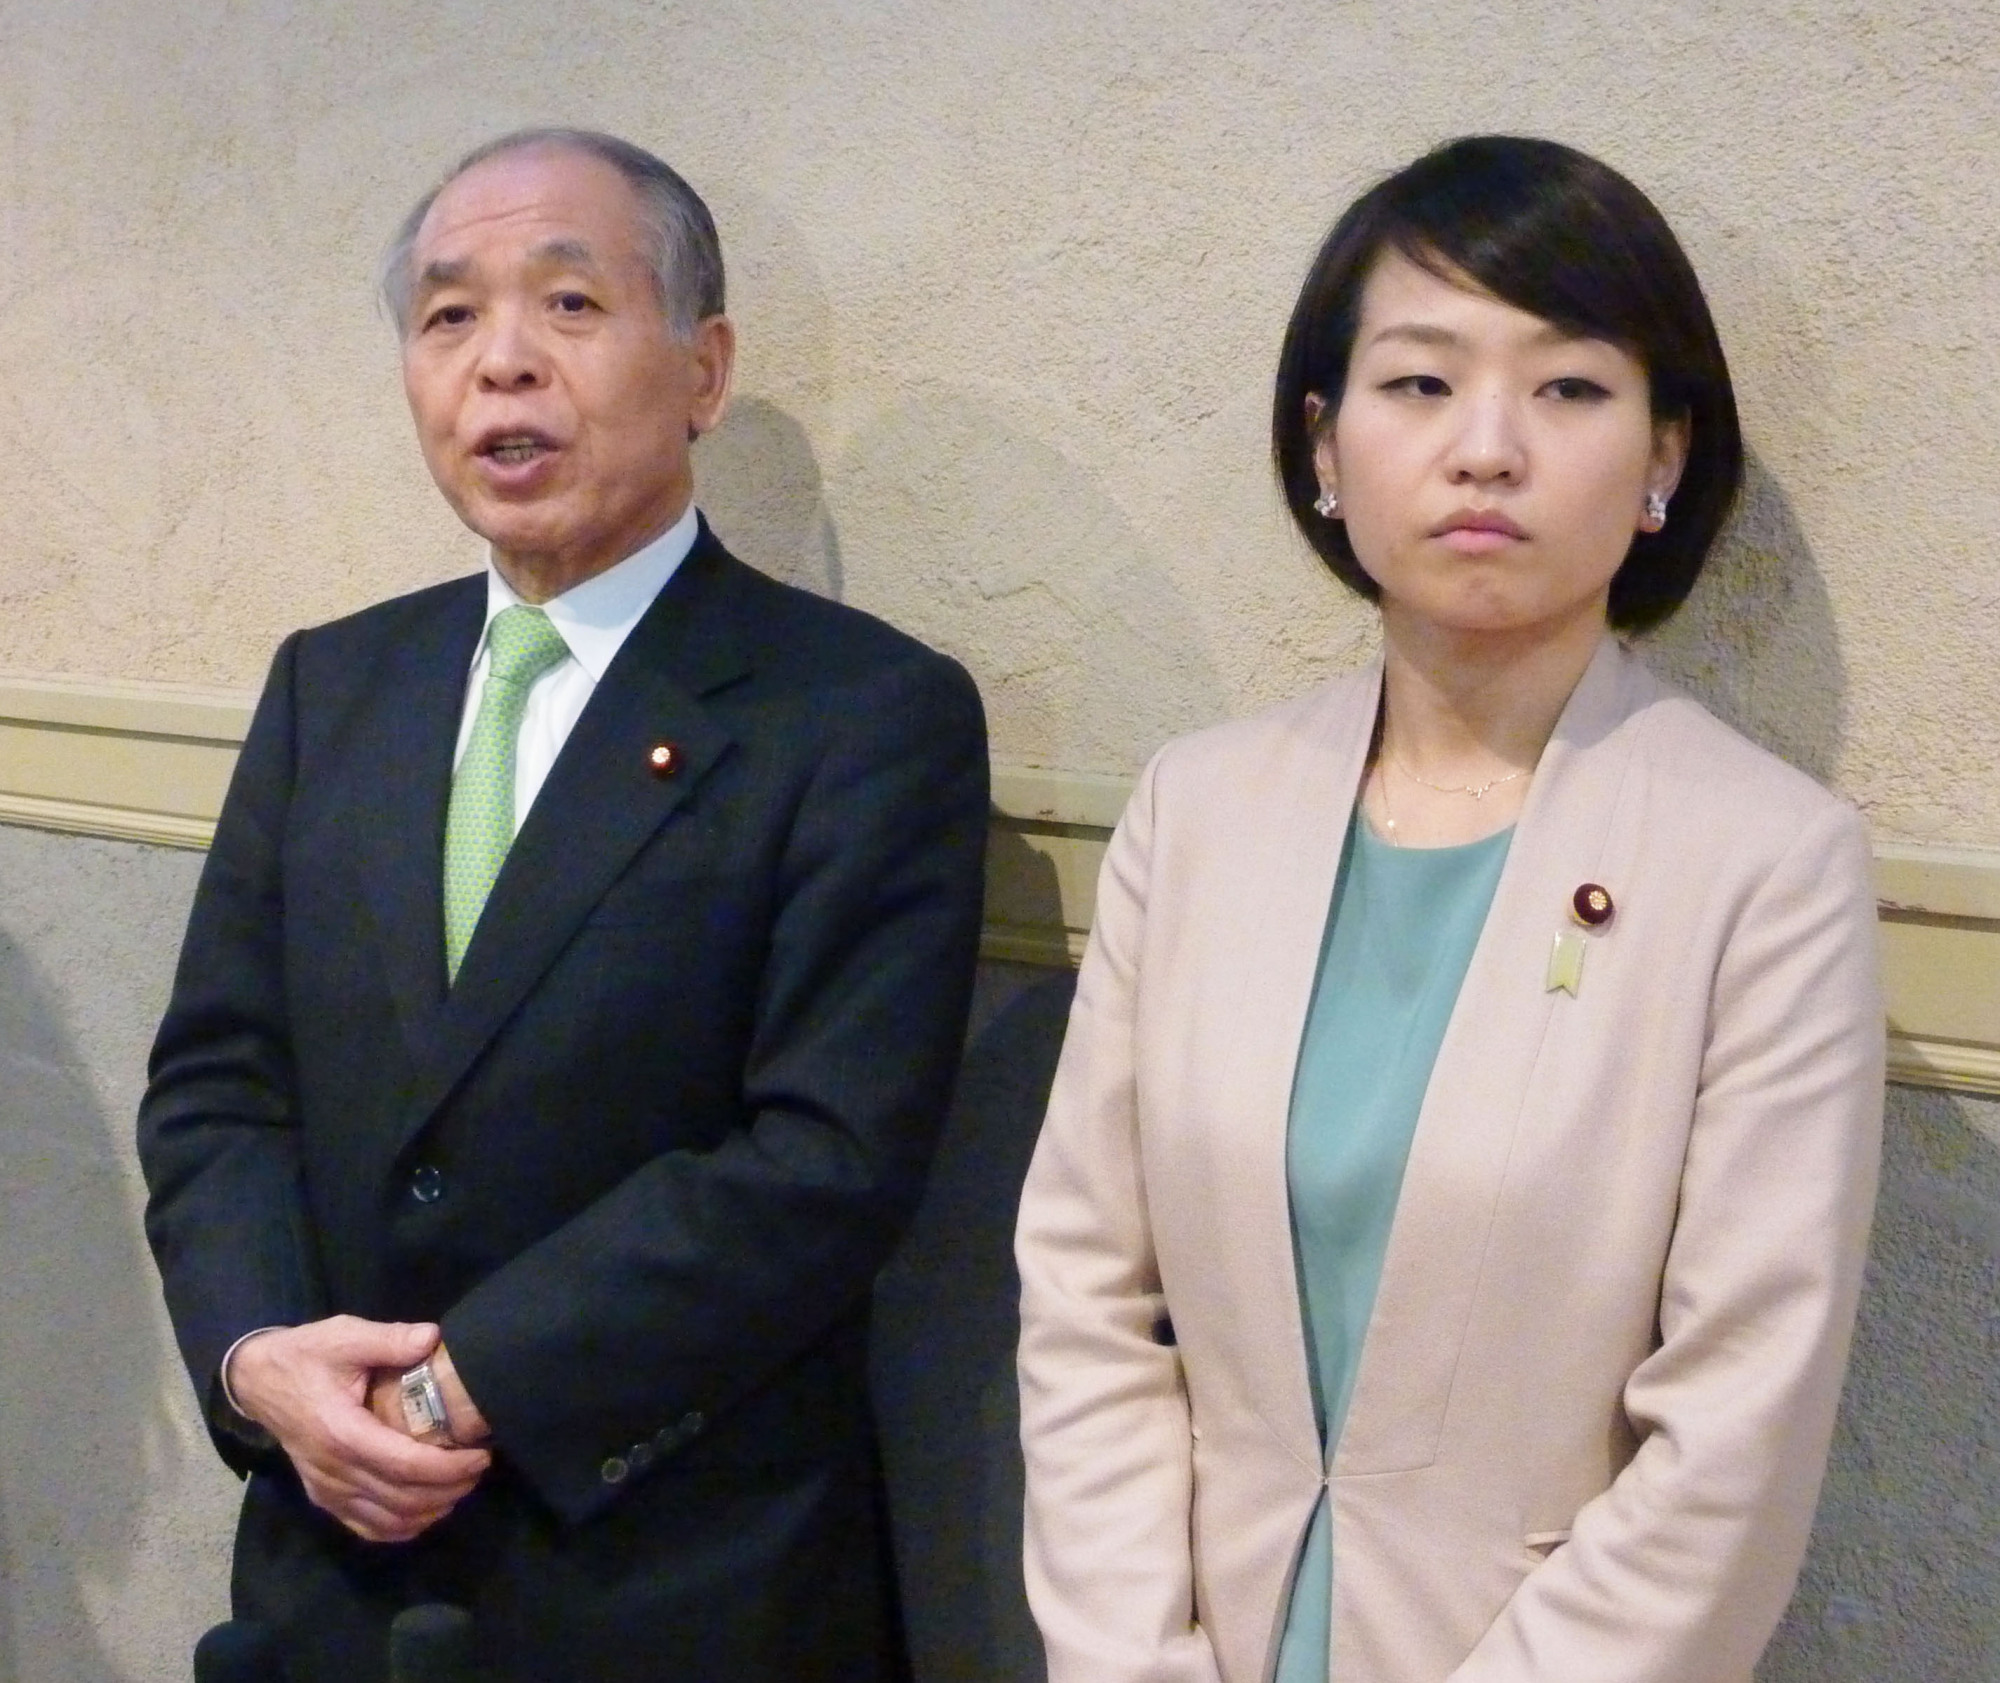 Trolled: After announcing her pregnancy on July 12, the blog of Lower House Hokkaido lawmaker Takako Suzuki — pictured here with her father, Muneo — received comments to the effect that she couldn't be a lawmaker and a mother at the same time.   KYODO